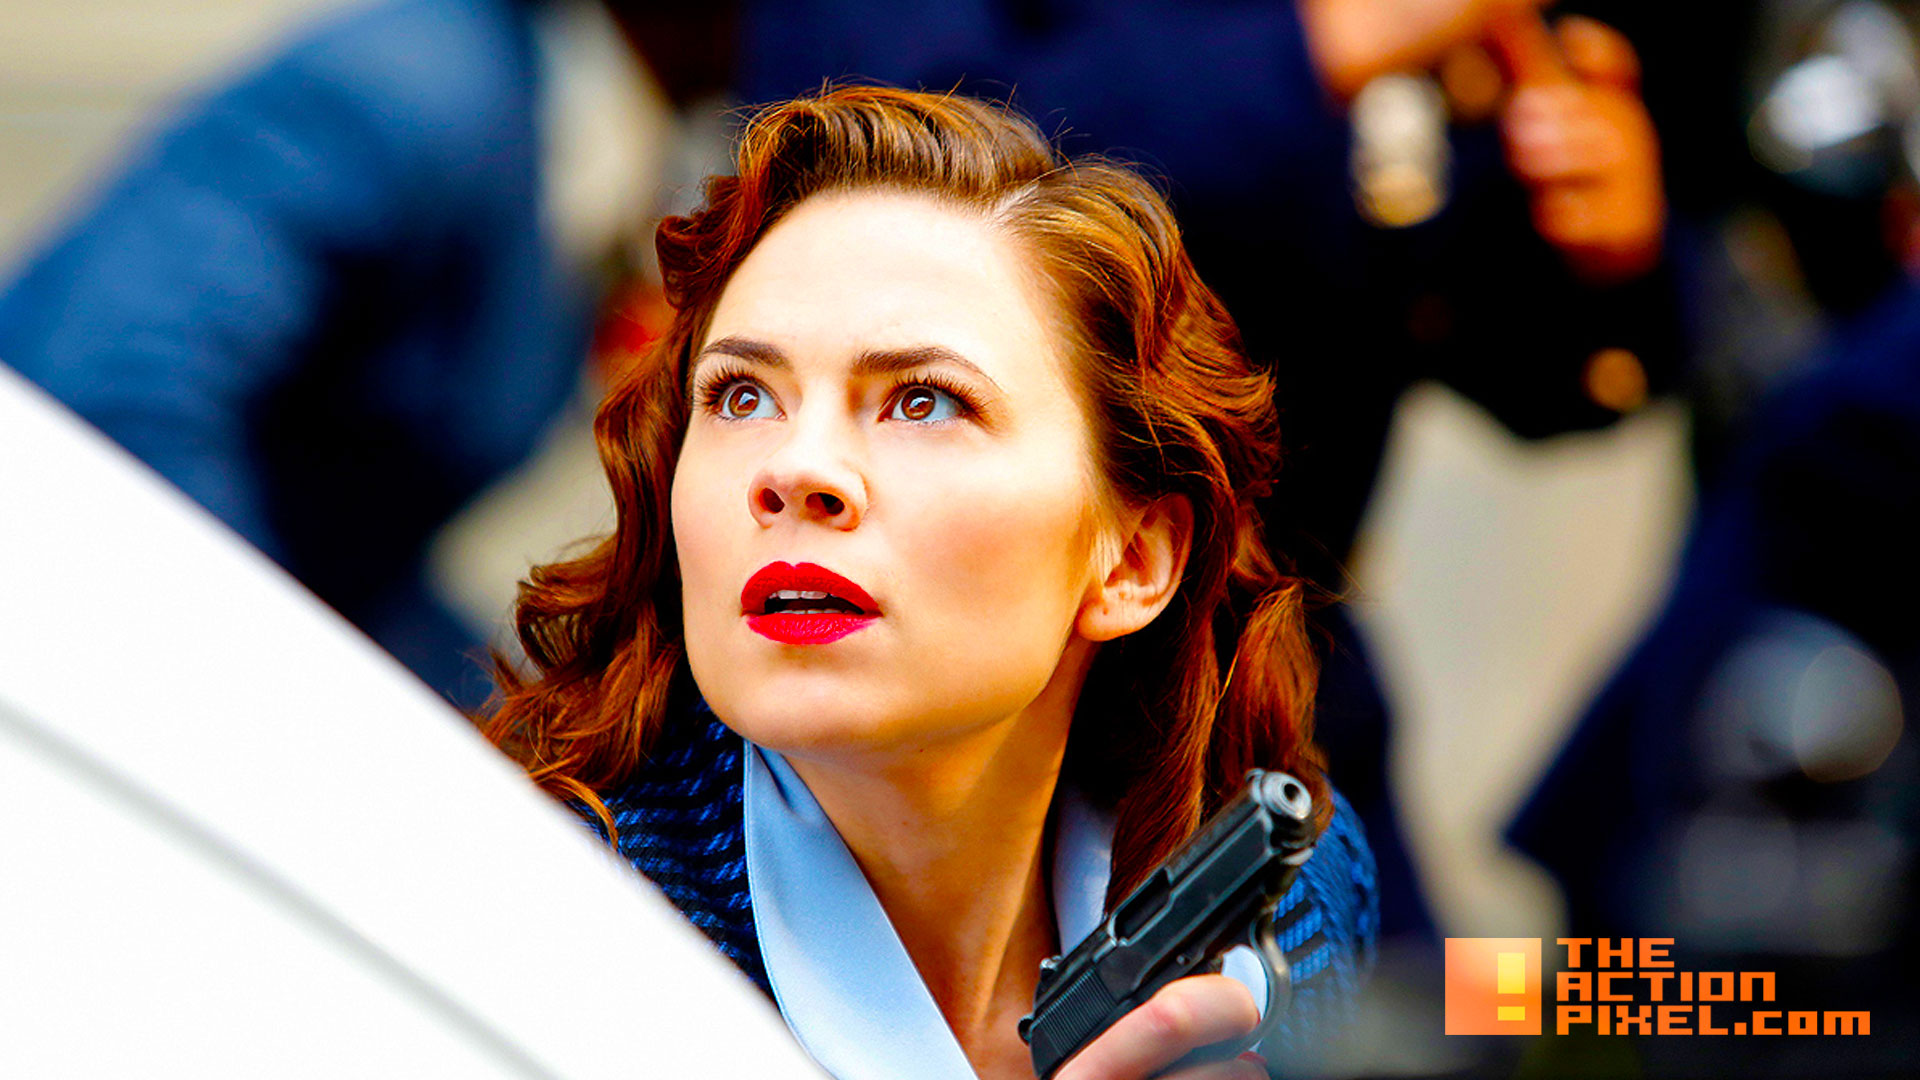 agent carter. season 2. marvel. abc. the action pixel. @theactionpixel